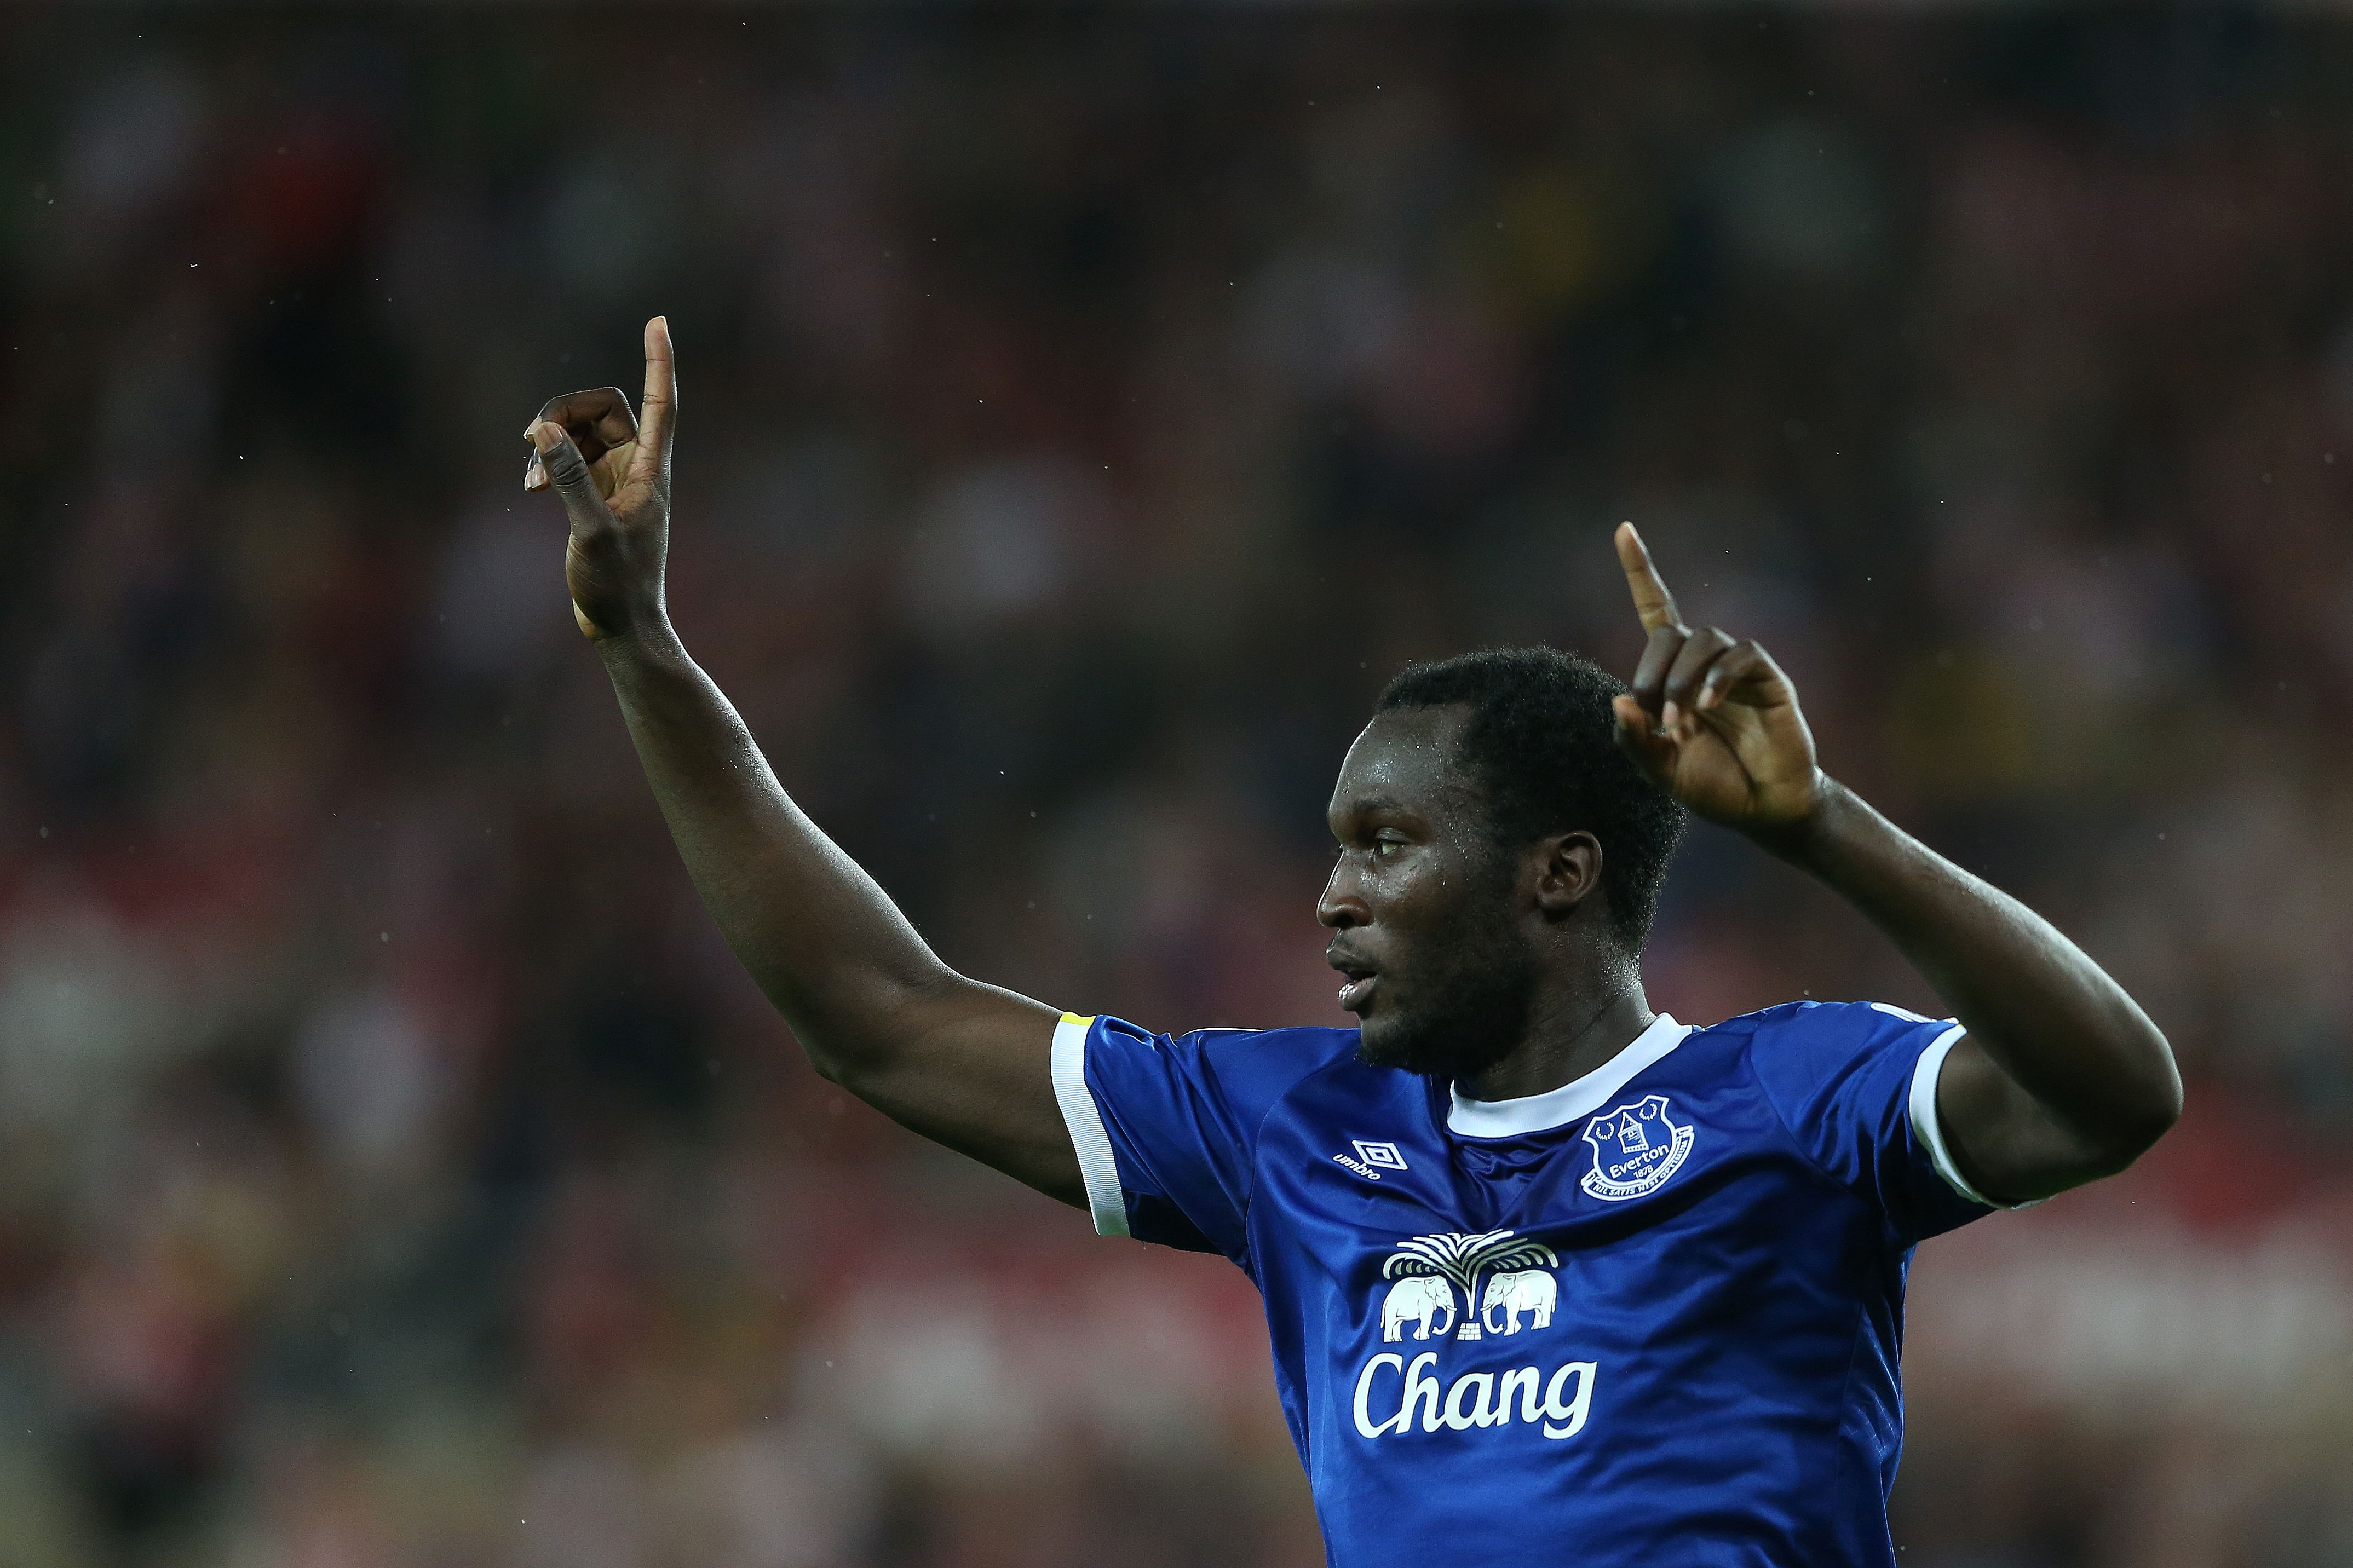 Everton's Belgian striker Romelu Lukaku celebrates scoring his team's first goal during the English Premier League football match between Sunderland and Everton at the Stadium of Light in Sunderland, north-east England on September 12, 2016. / AFP / SCOTT HEPPELL / RESTRICTED TO EDITORIAL USE. No use with unauthorized audio, video, data, fixture lists, club/league logos or 'live' services. Online in-match use limited to 75 images, no video emulation. No use in betting, games or single club/league/player publications. / (Photo credit should read SCOTT HEPPELL/AFP/Getty Images)